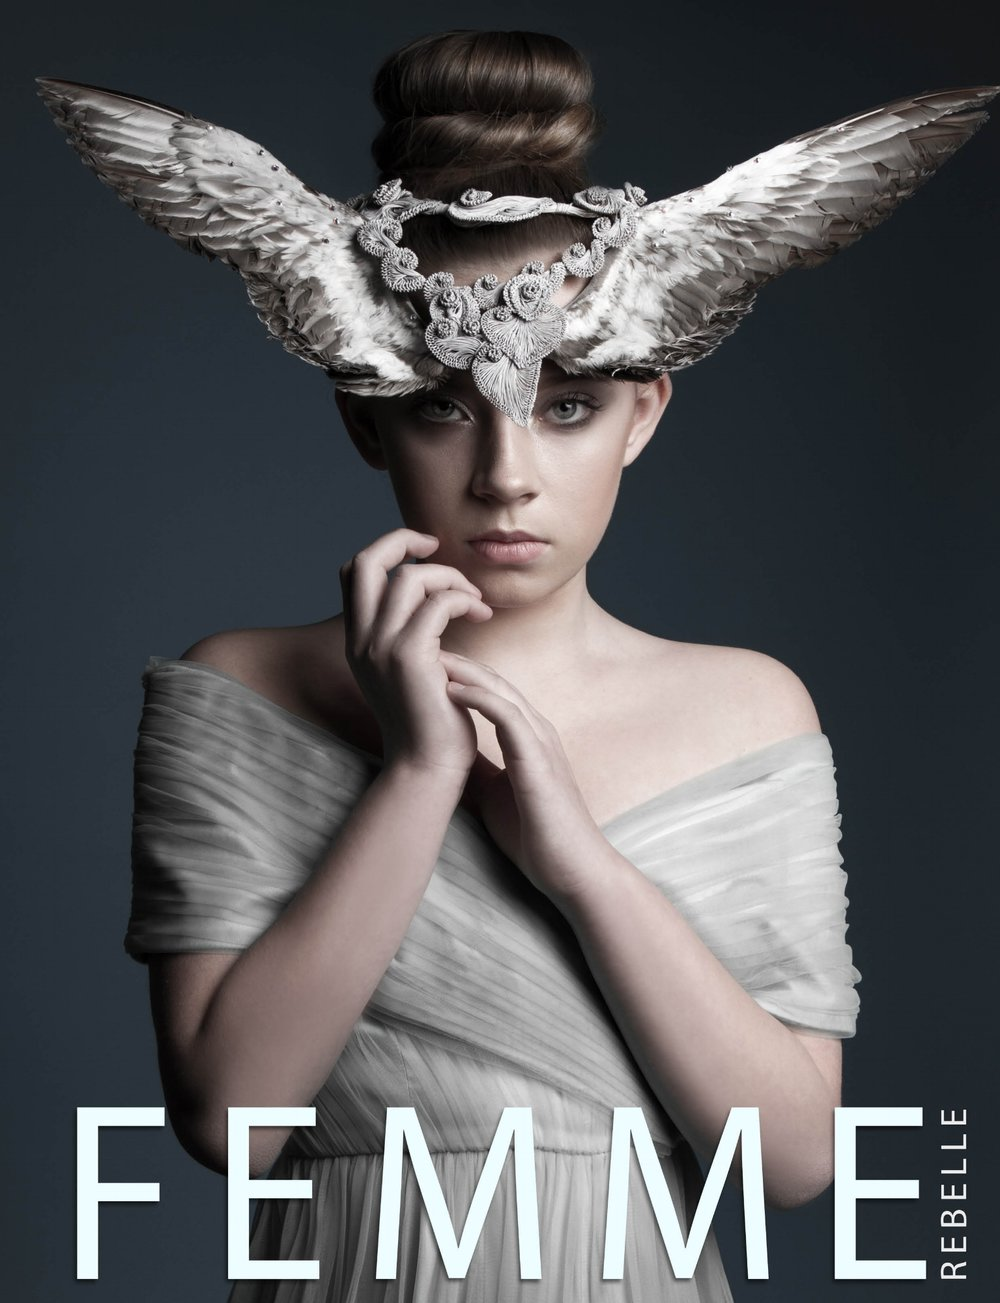 Femme Rebelle May BOOK 1 Bang Tidy Cover.jpg